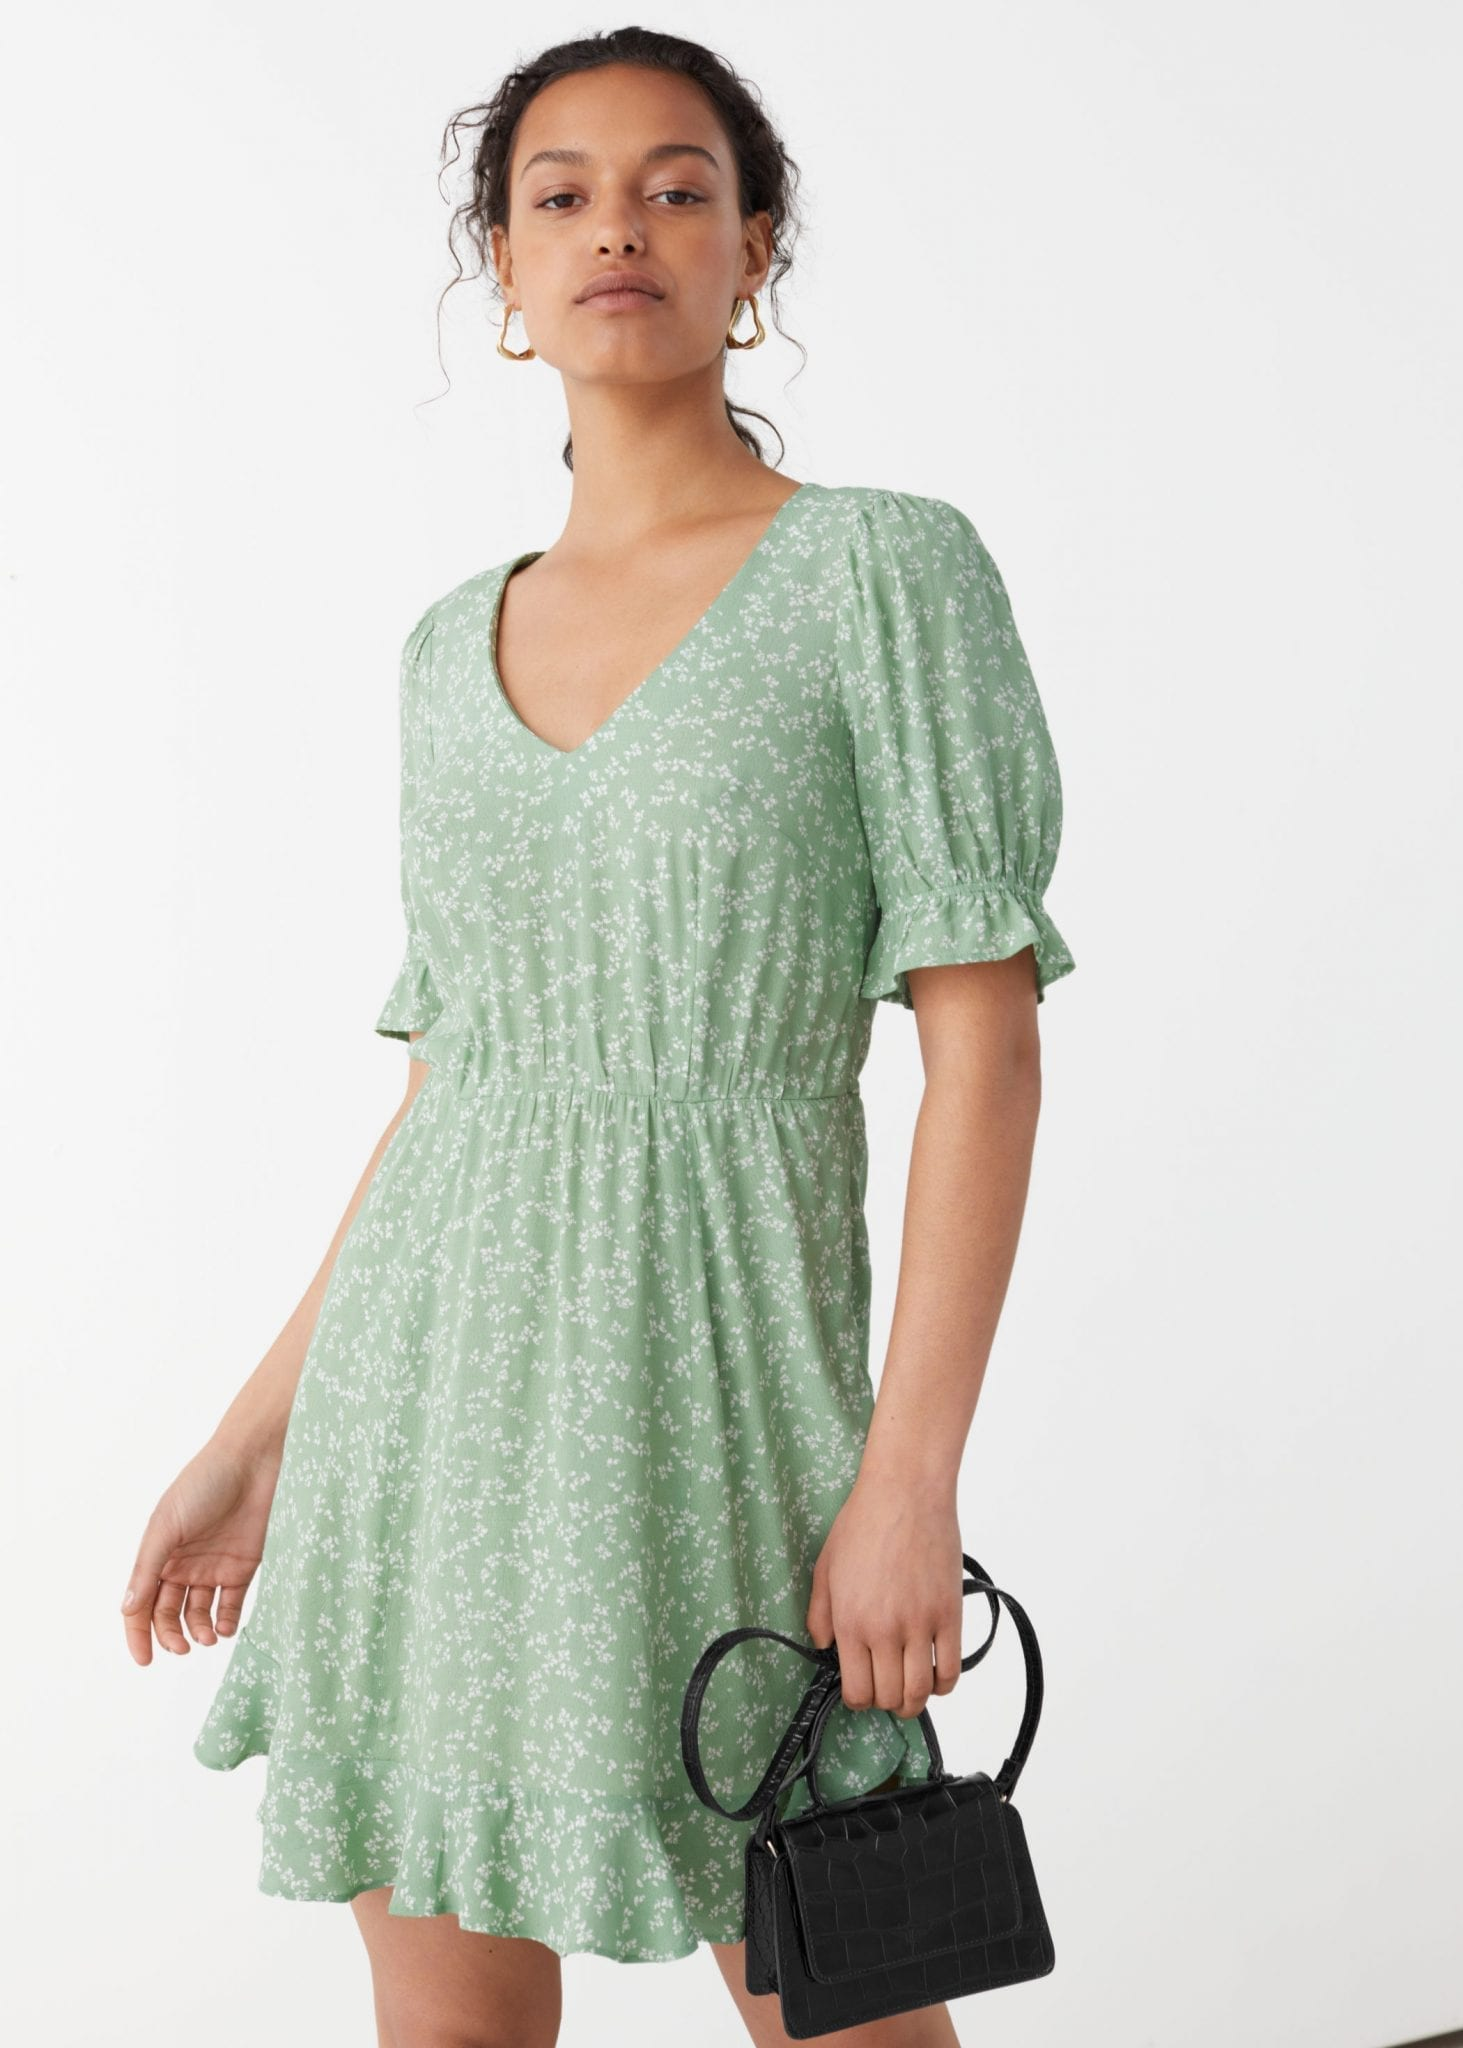 AND OTHER STORIES V-Neck Puff Sleeve Mini Dress